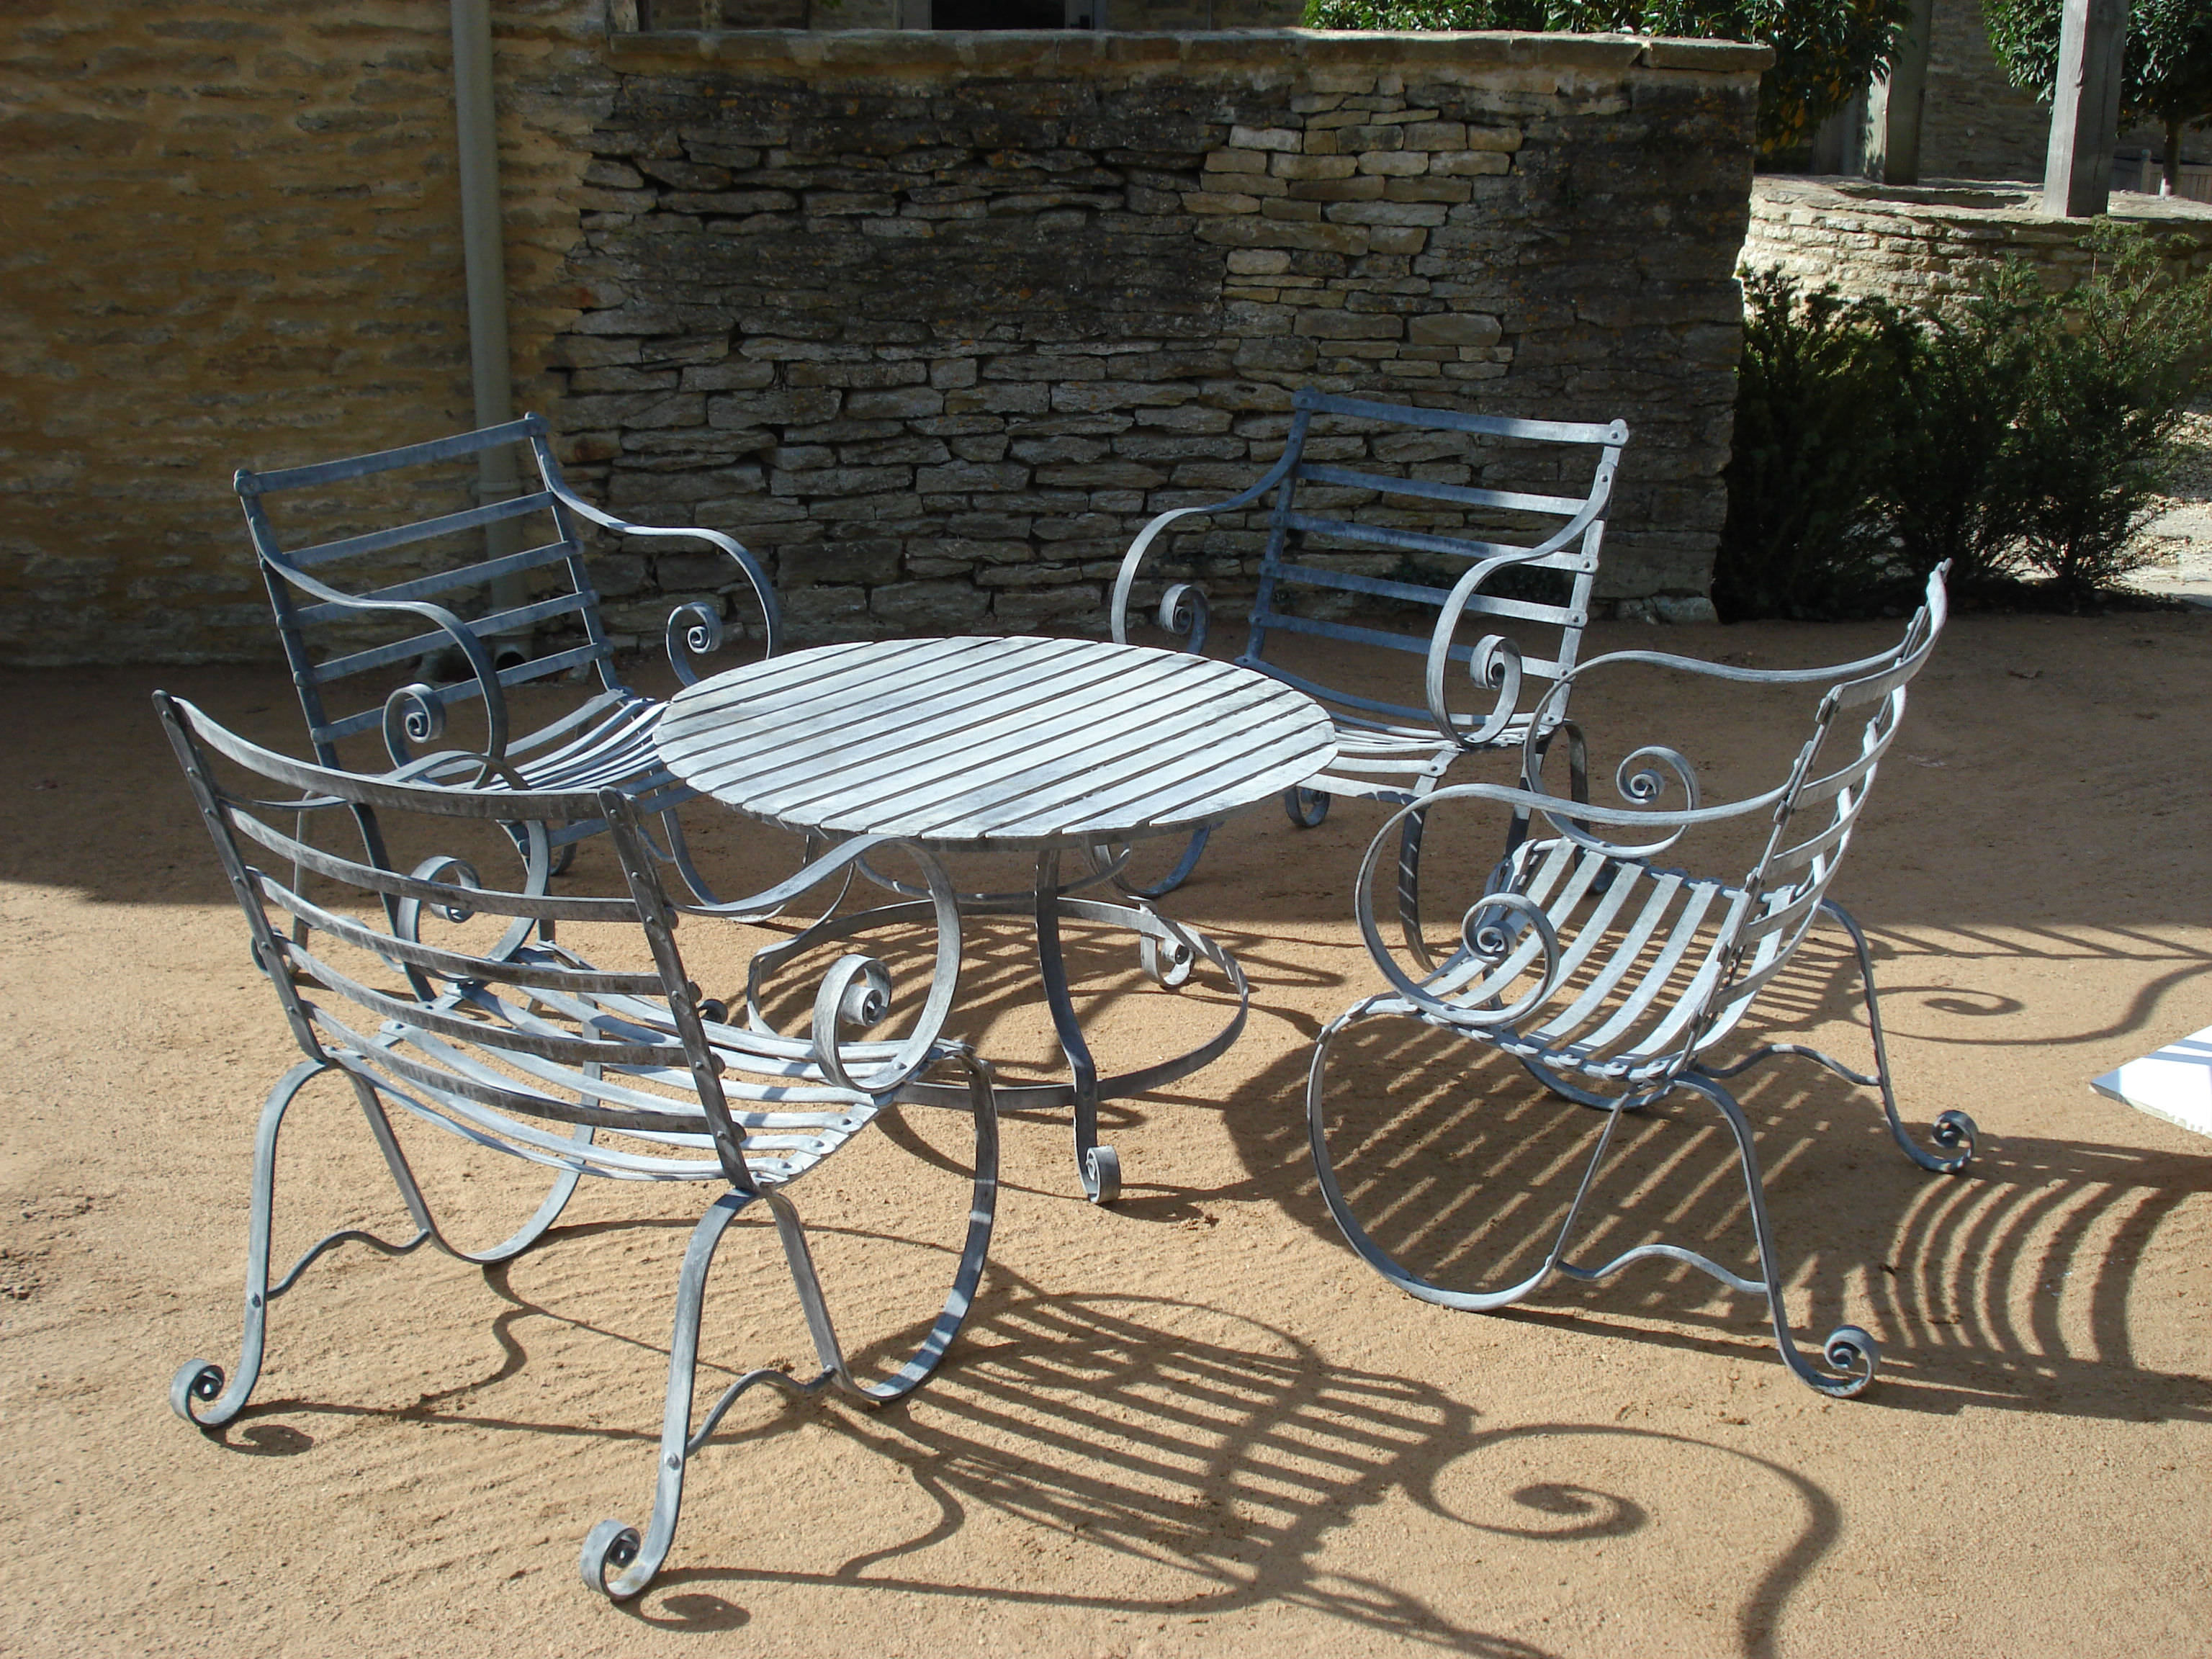 bespoke garden furniture from gedding mill - Garden Furniture Traditional